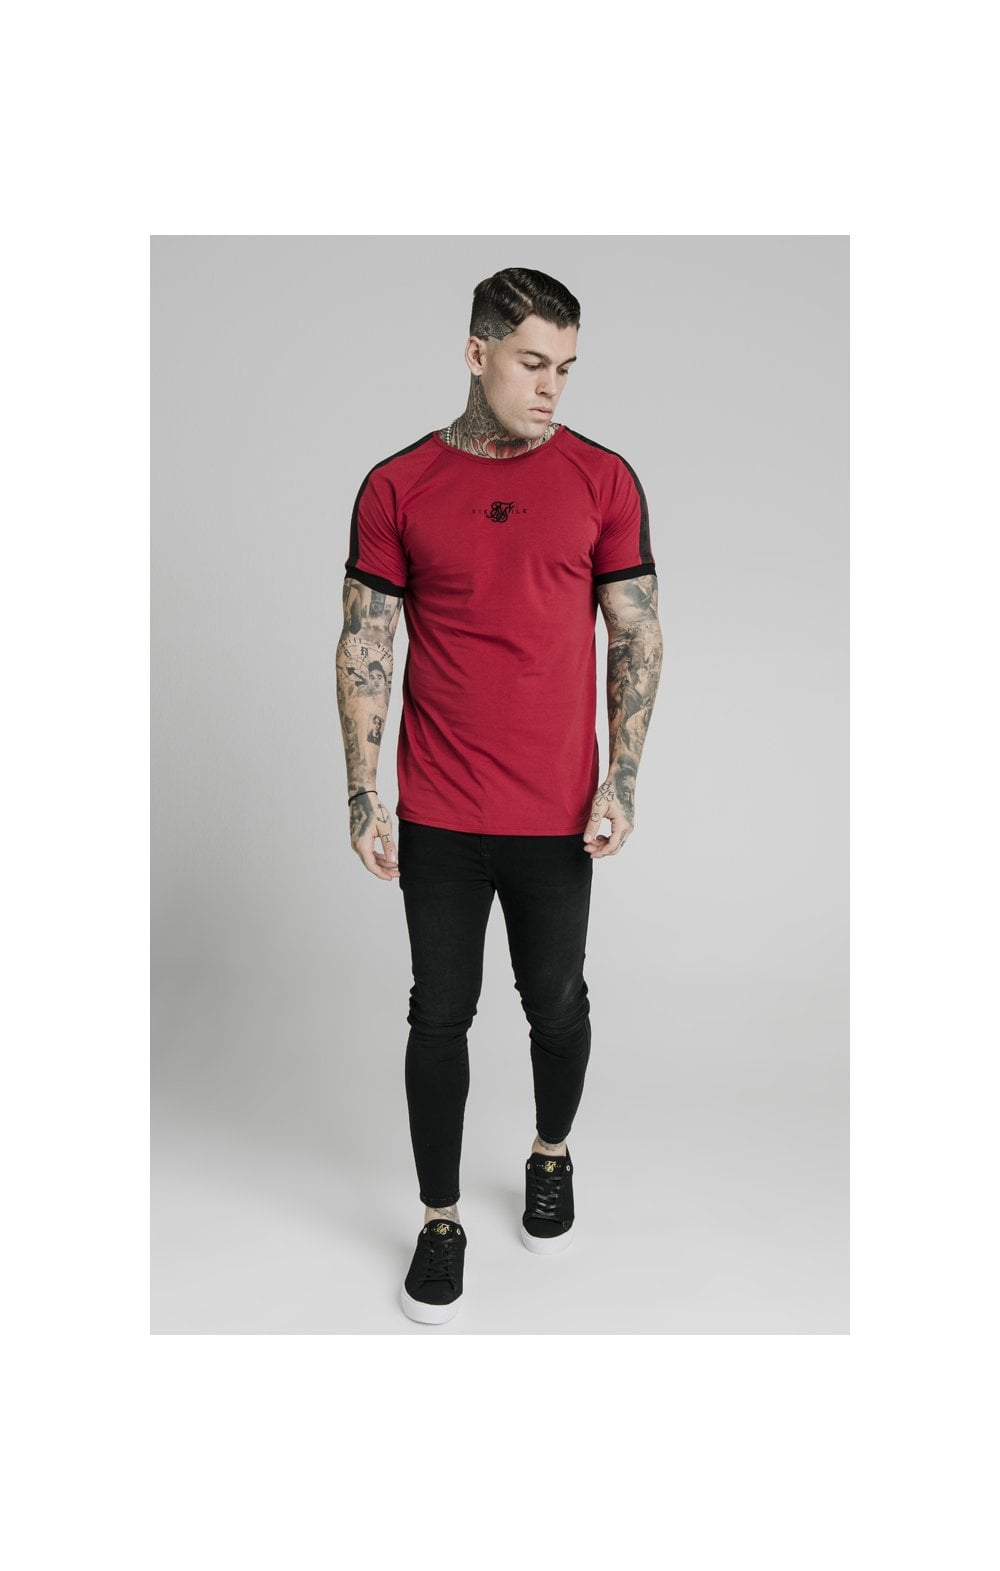 SikSilk S/S Raglan Tape Gym Tee - Red (1)